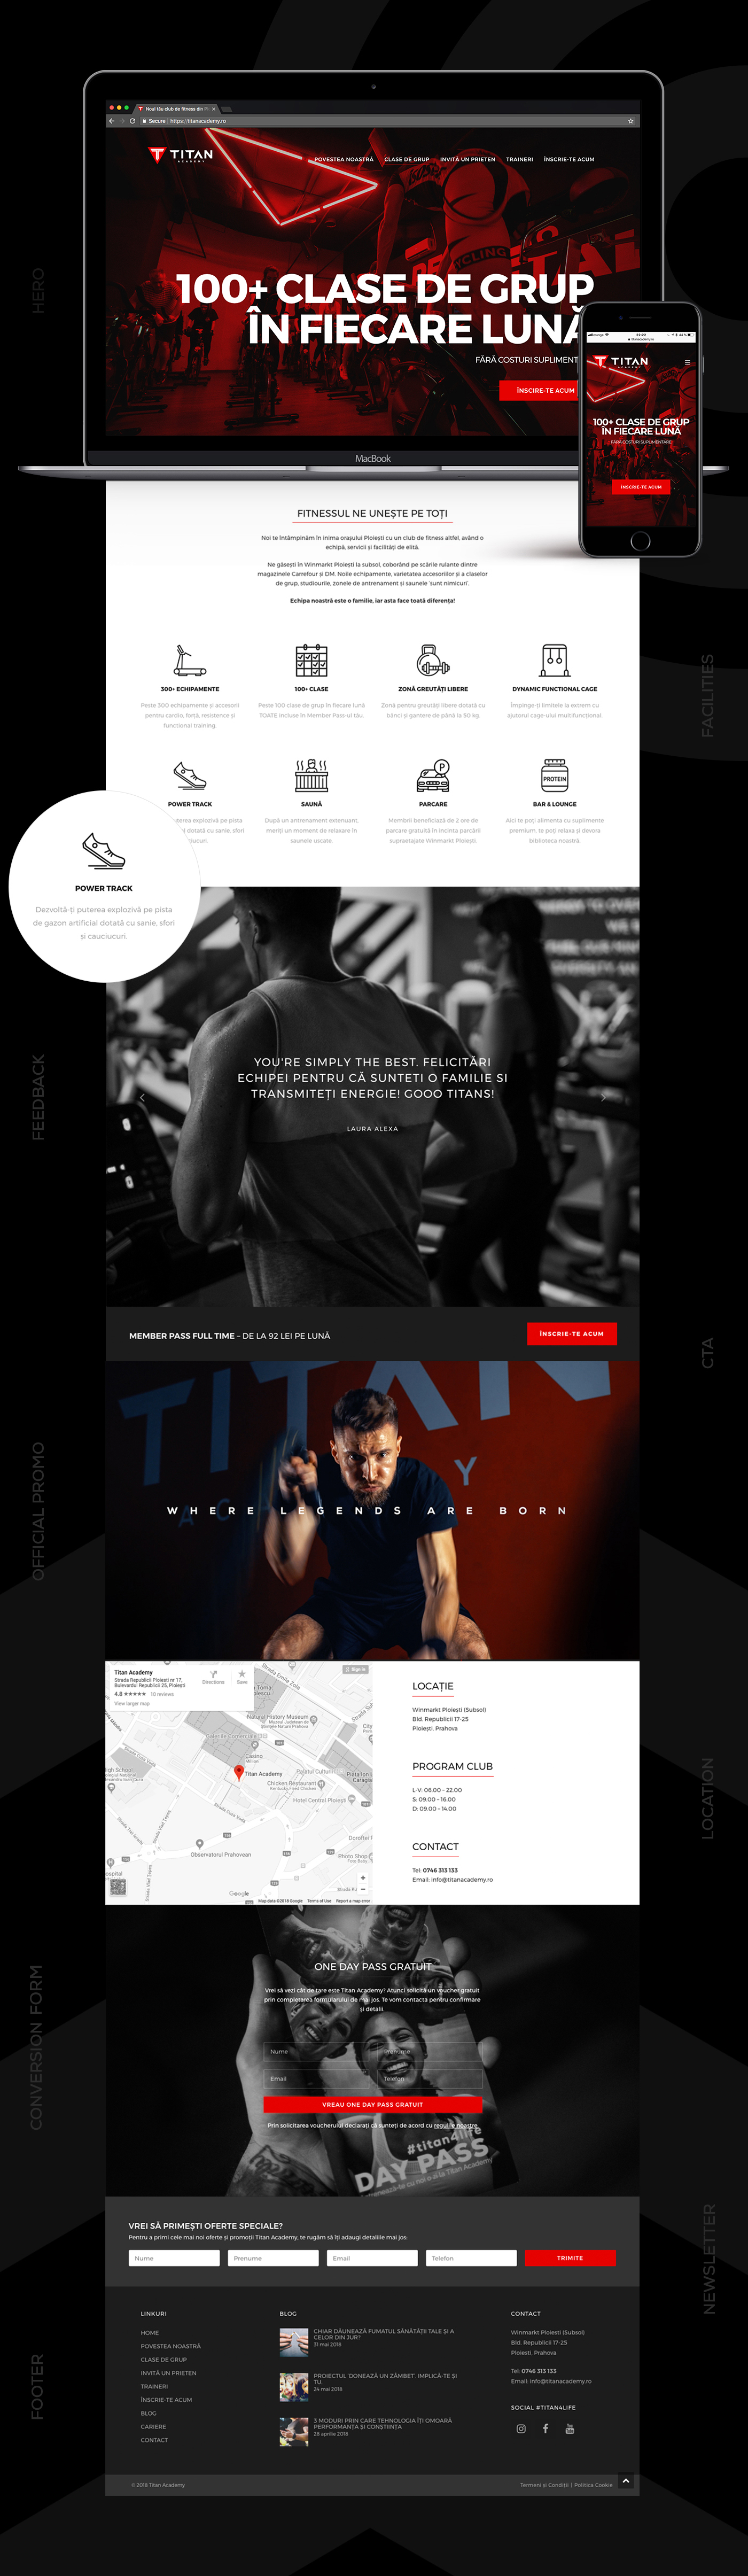 titan-academy-branding-website-web-design-user-experience-user-interface.jpg